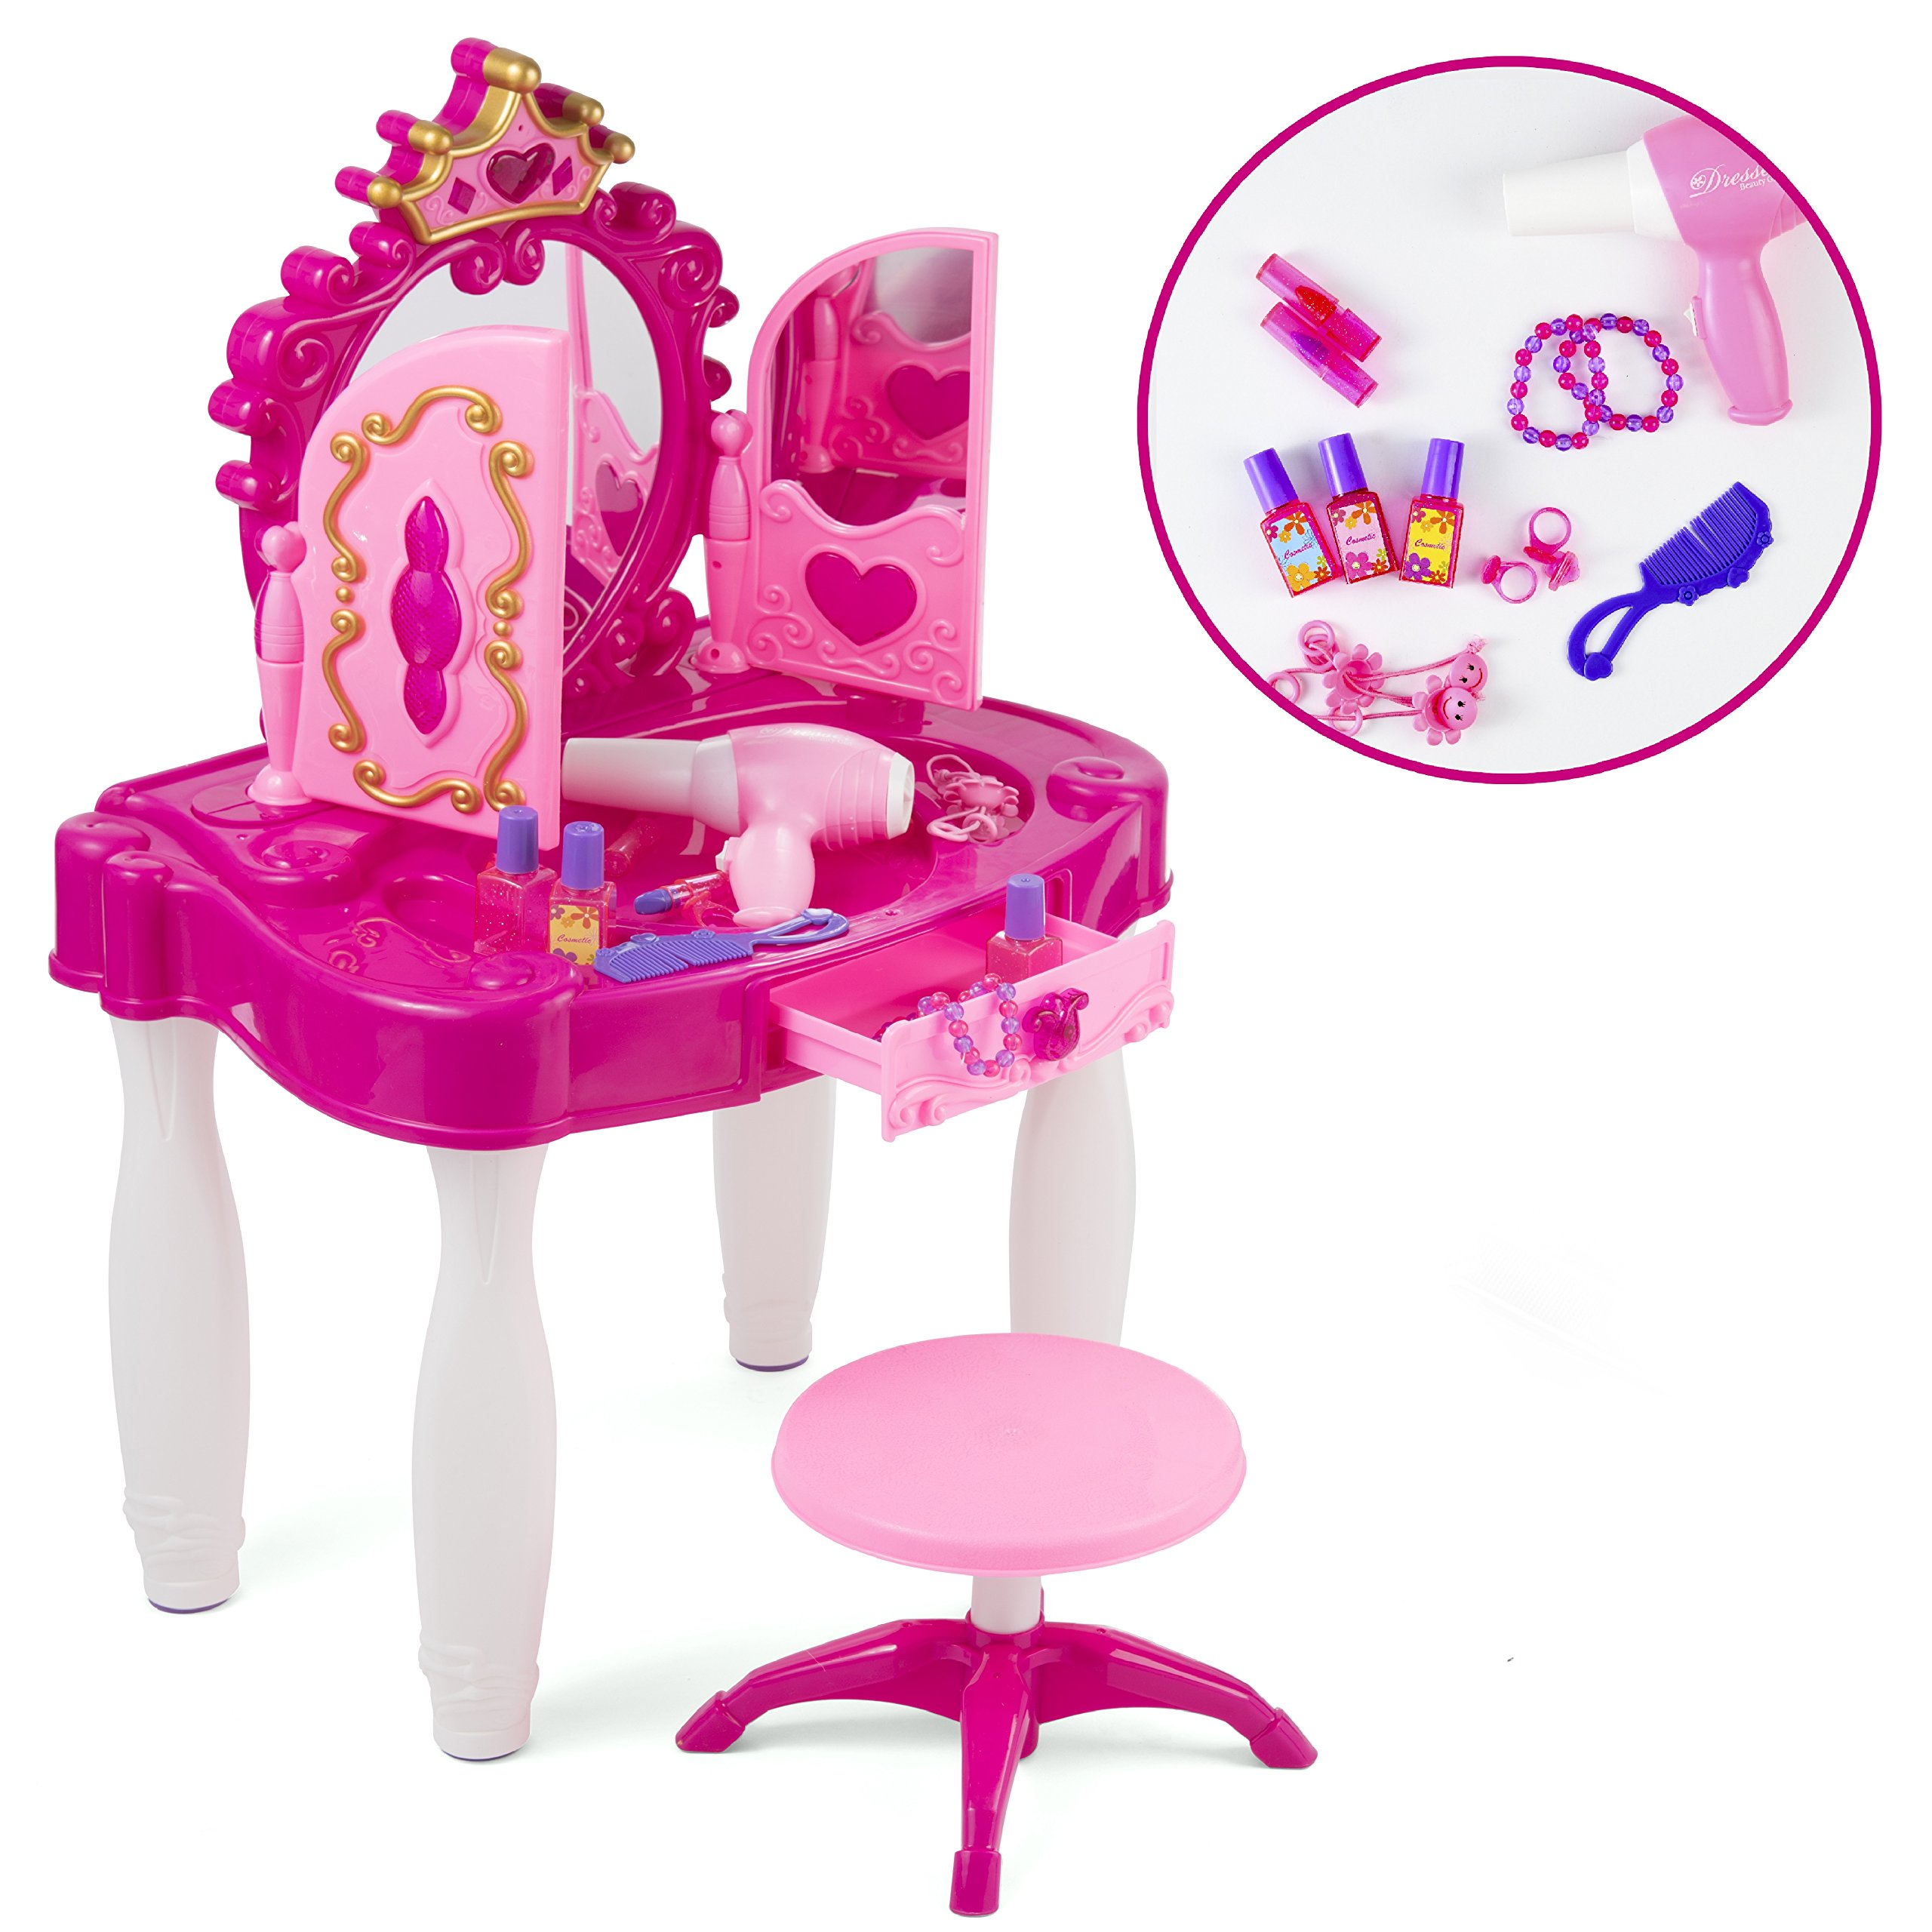 Pretend Play Kids Vanity Table and Chair Beauty Mirror and Accesories Play Set with Fashion & Makeup Accessories for Girls by Prextex